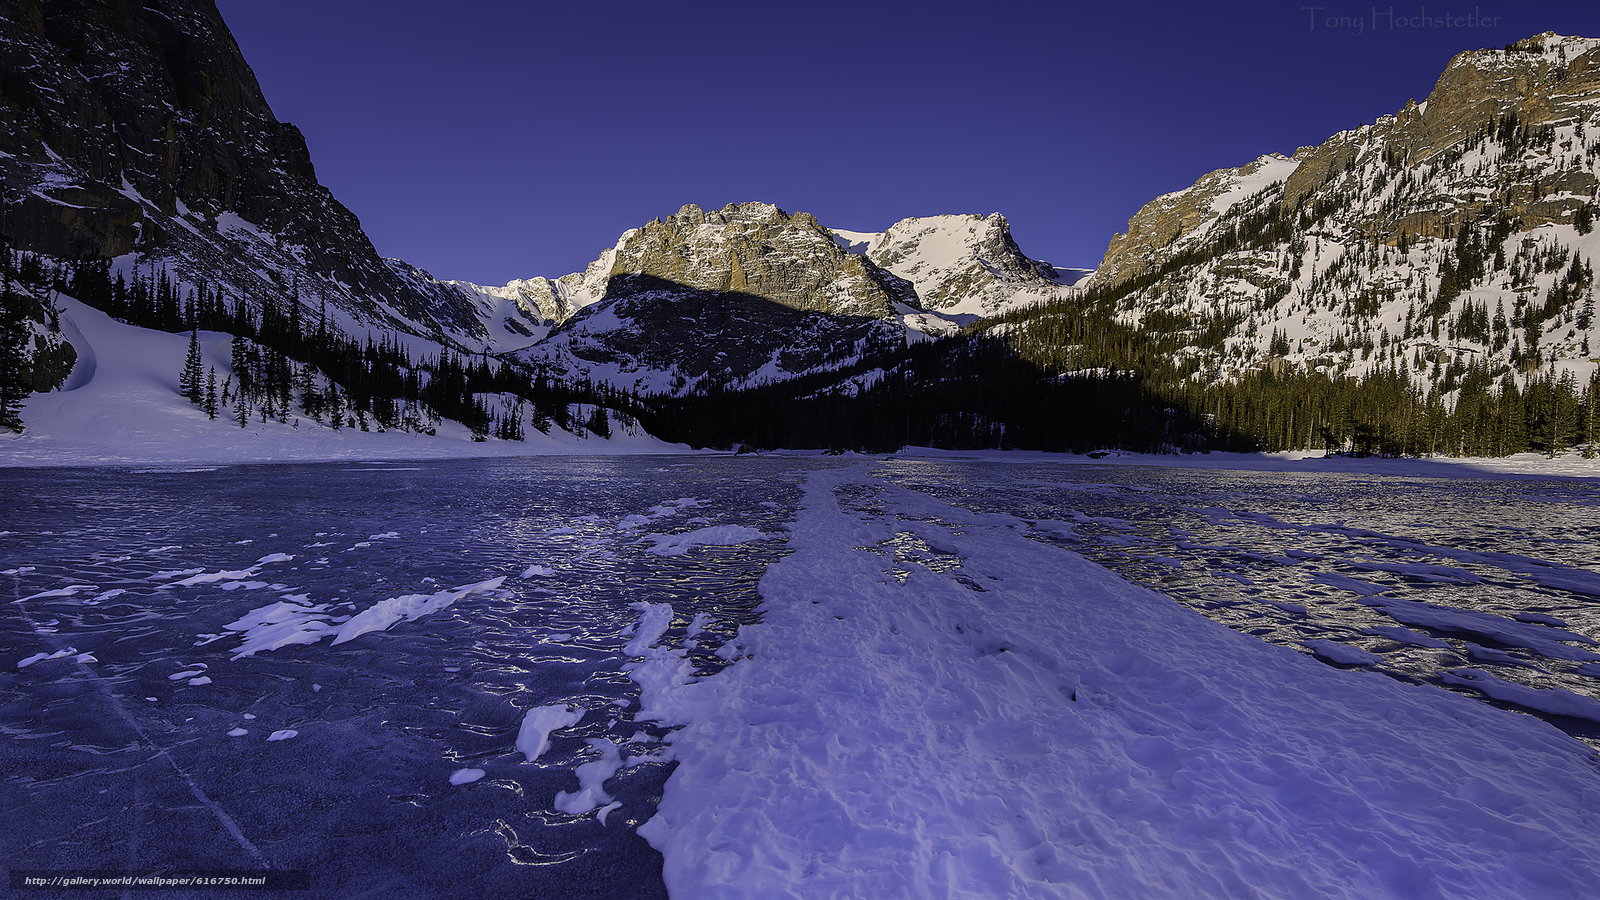 Download wallpaper Rocky Mountain National Park lake ice Mountains 1600x900